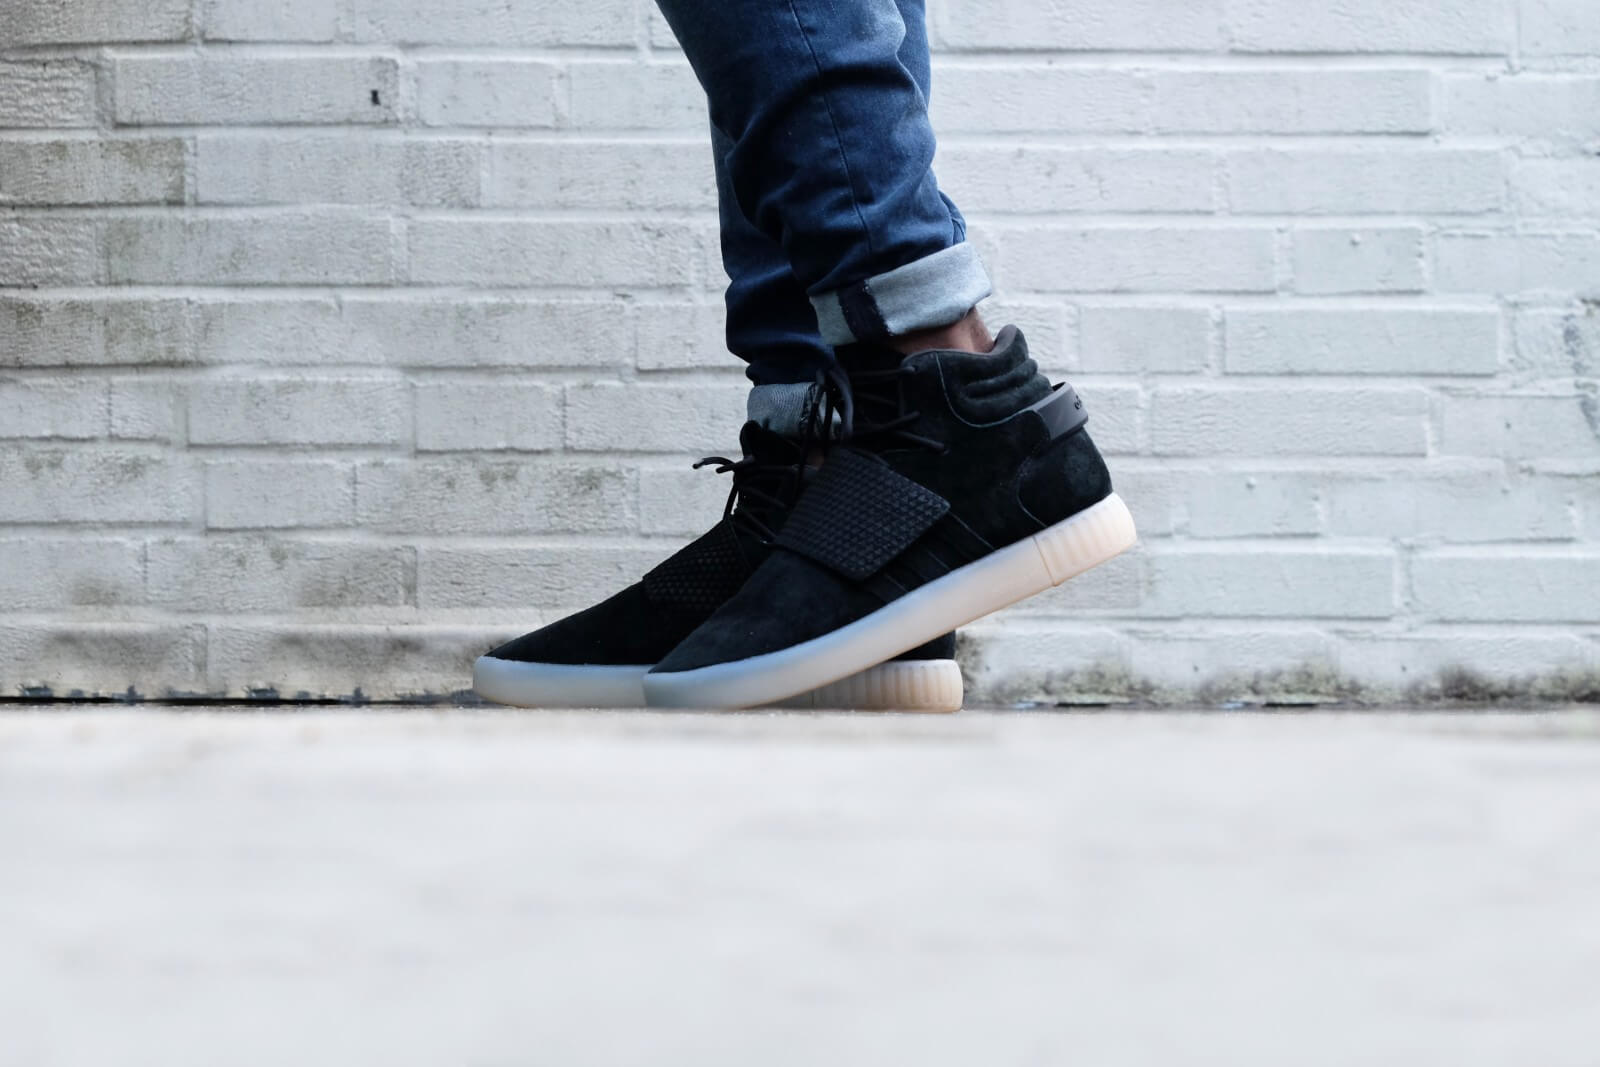 Adidas Tubular Invader 2.0 Shoes Black adidas US